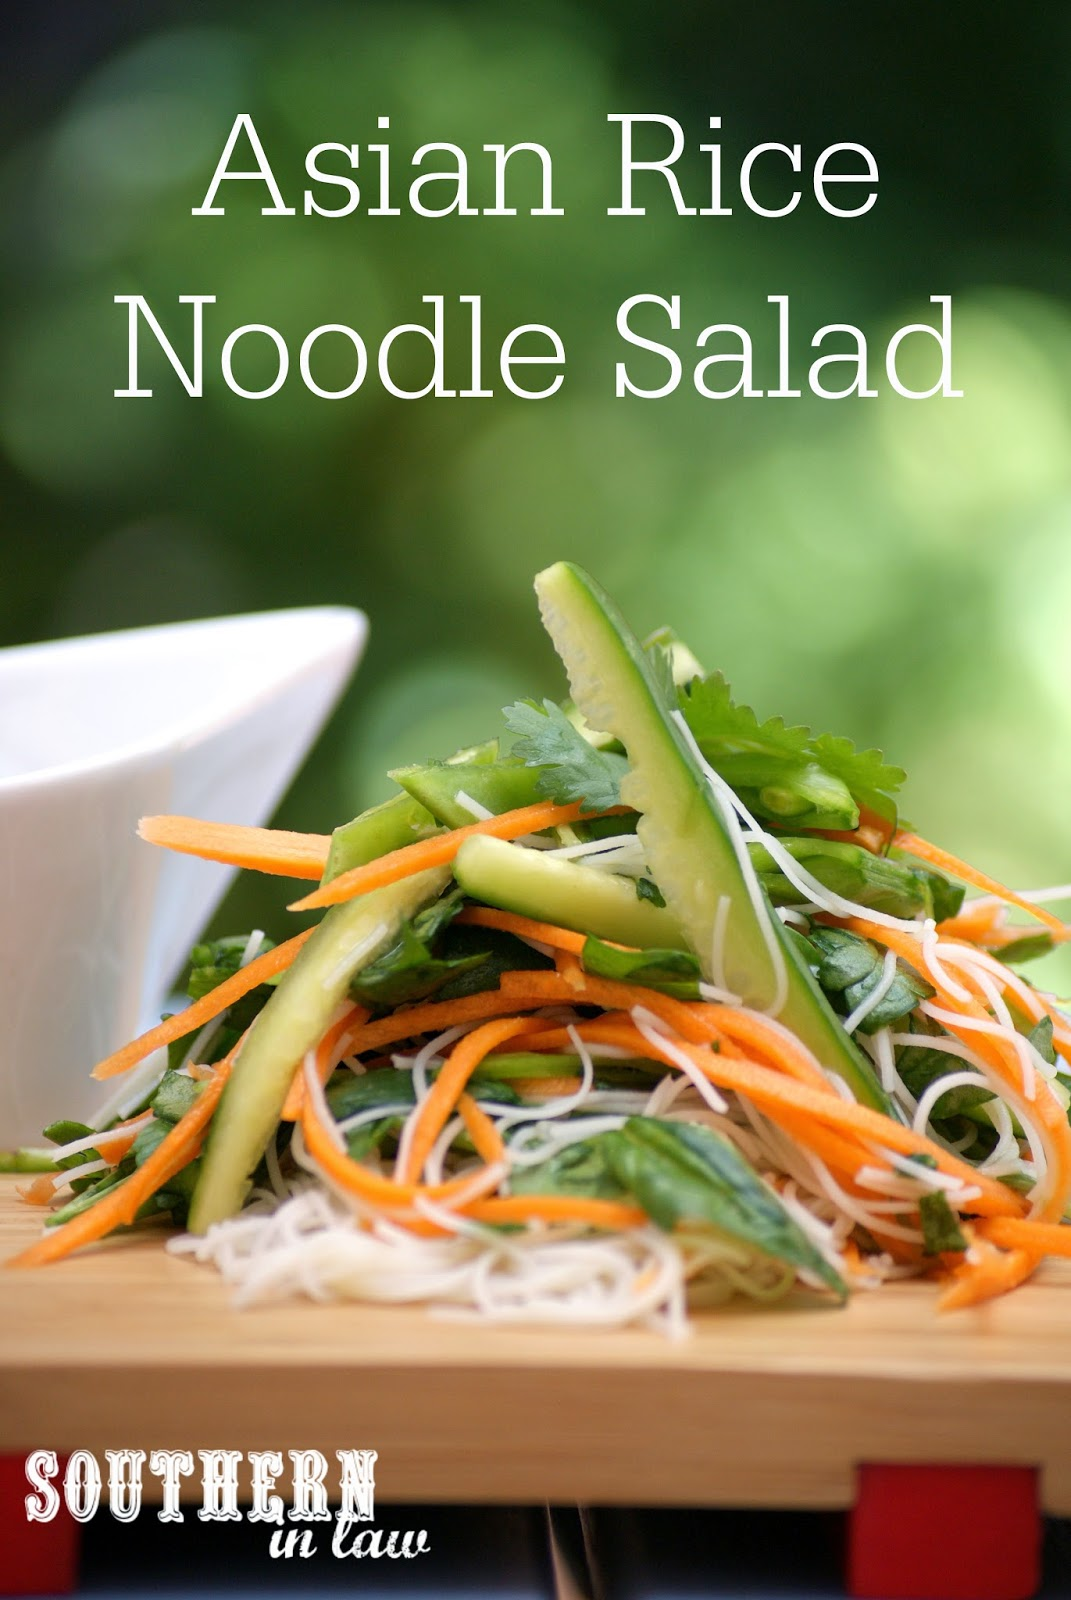 Asian Noodle Salad with Creamy Peanut Dressing Recipe - low fat, gluten free, clean eating friendly, vegan, vegetarian, easy to make salads and sides